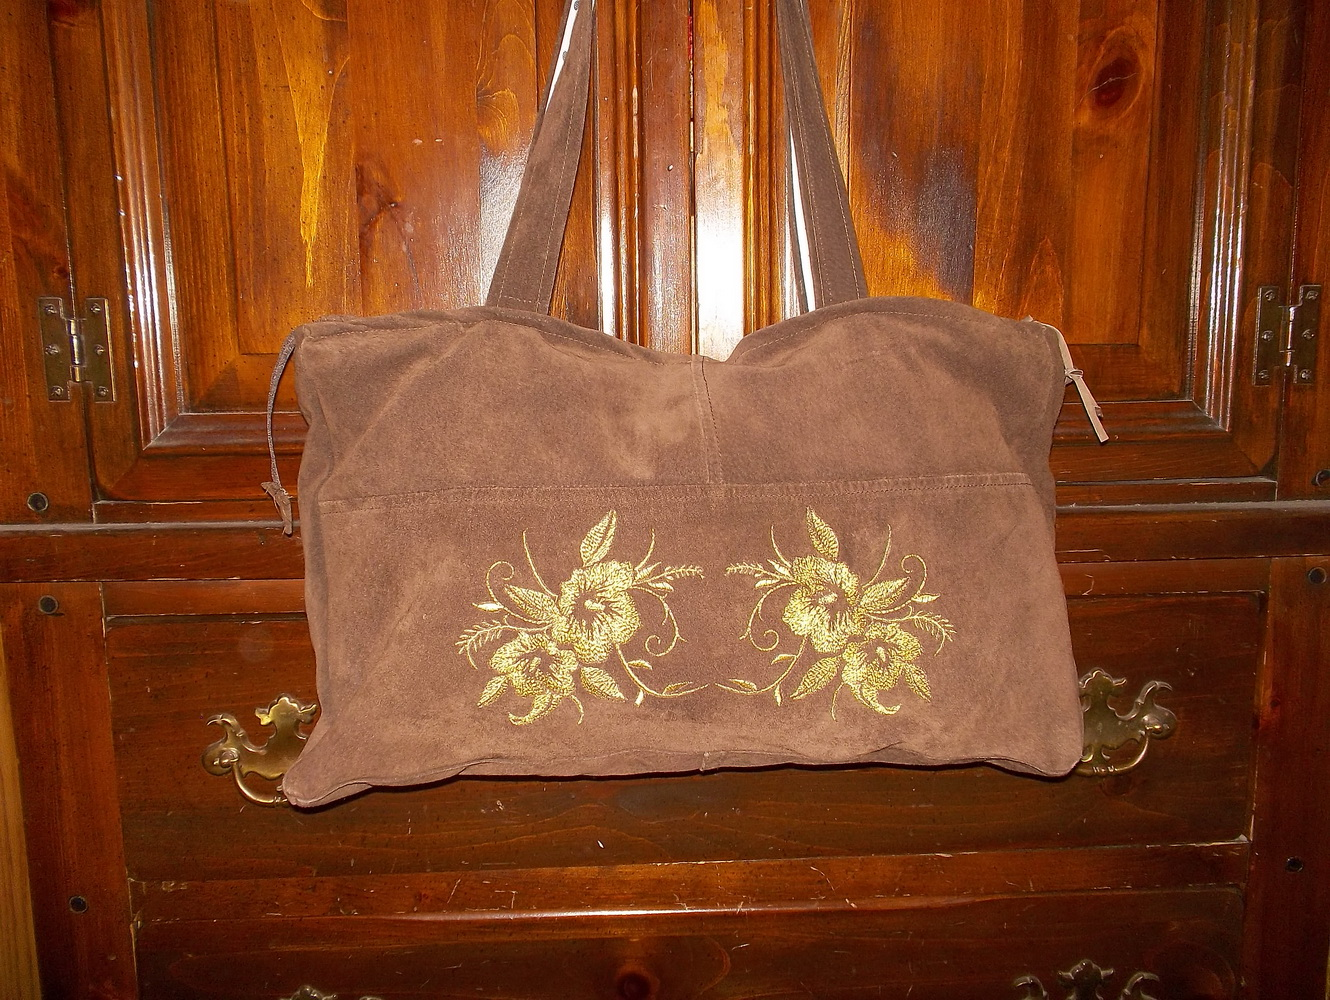 Brown embroidered bag with blue flower design